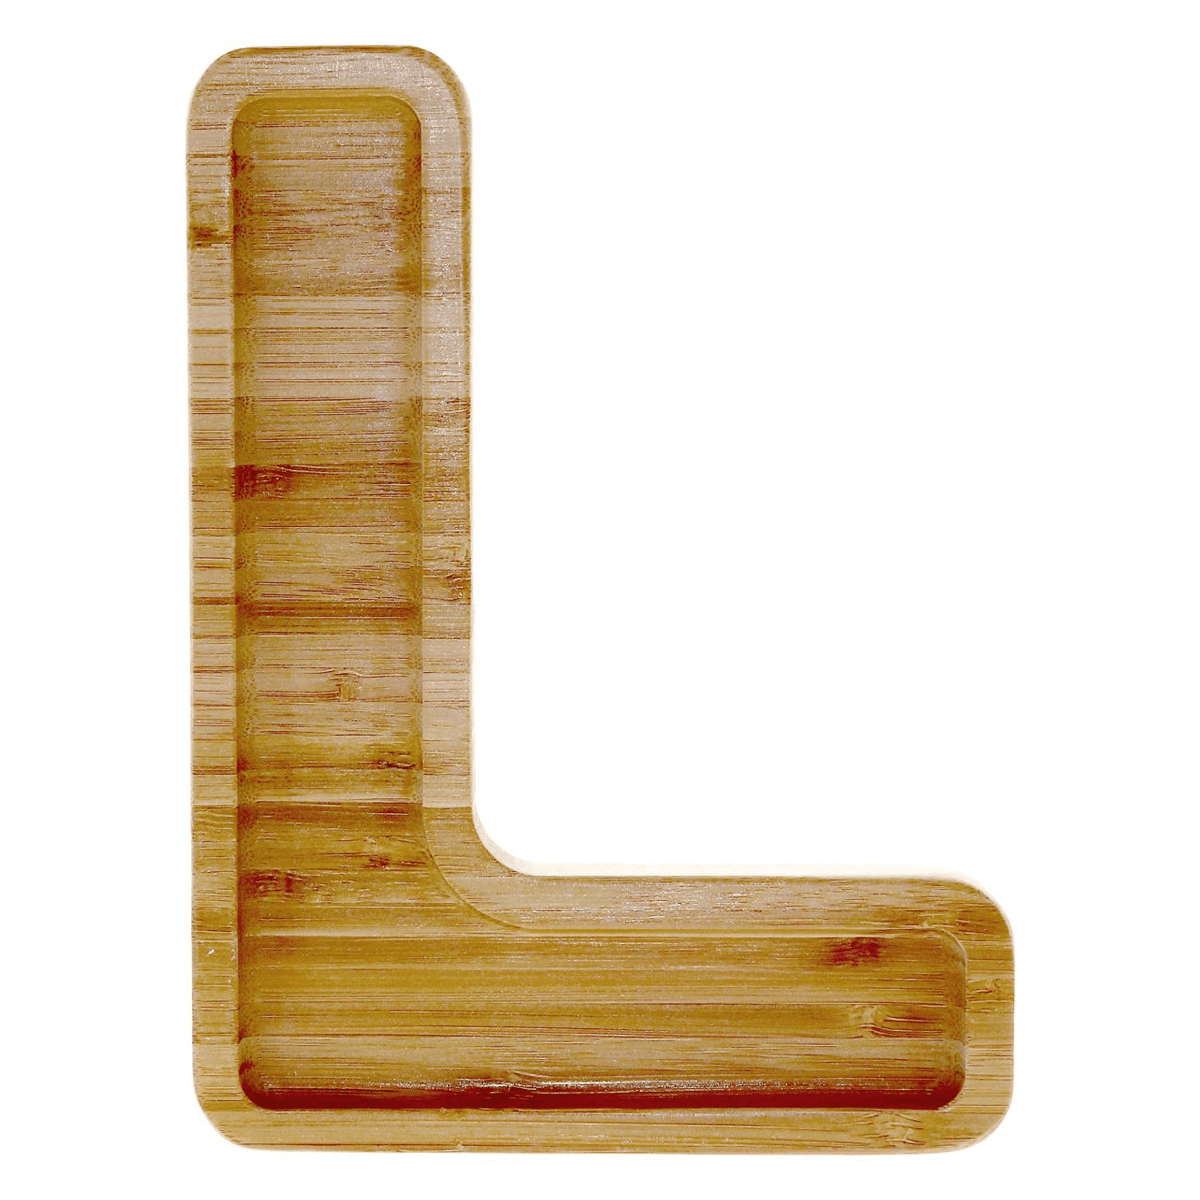 Liying Bamboo, L - Plates & Dishes